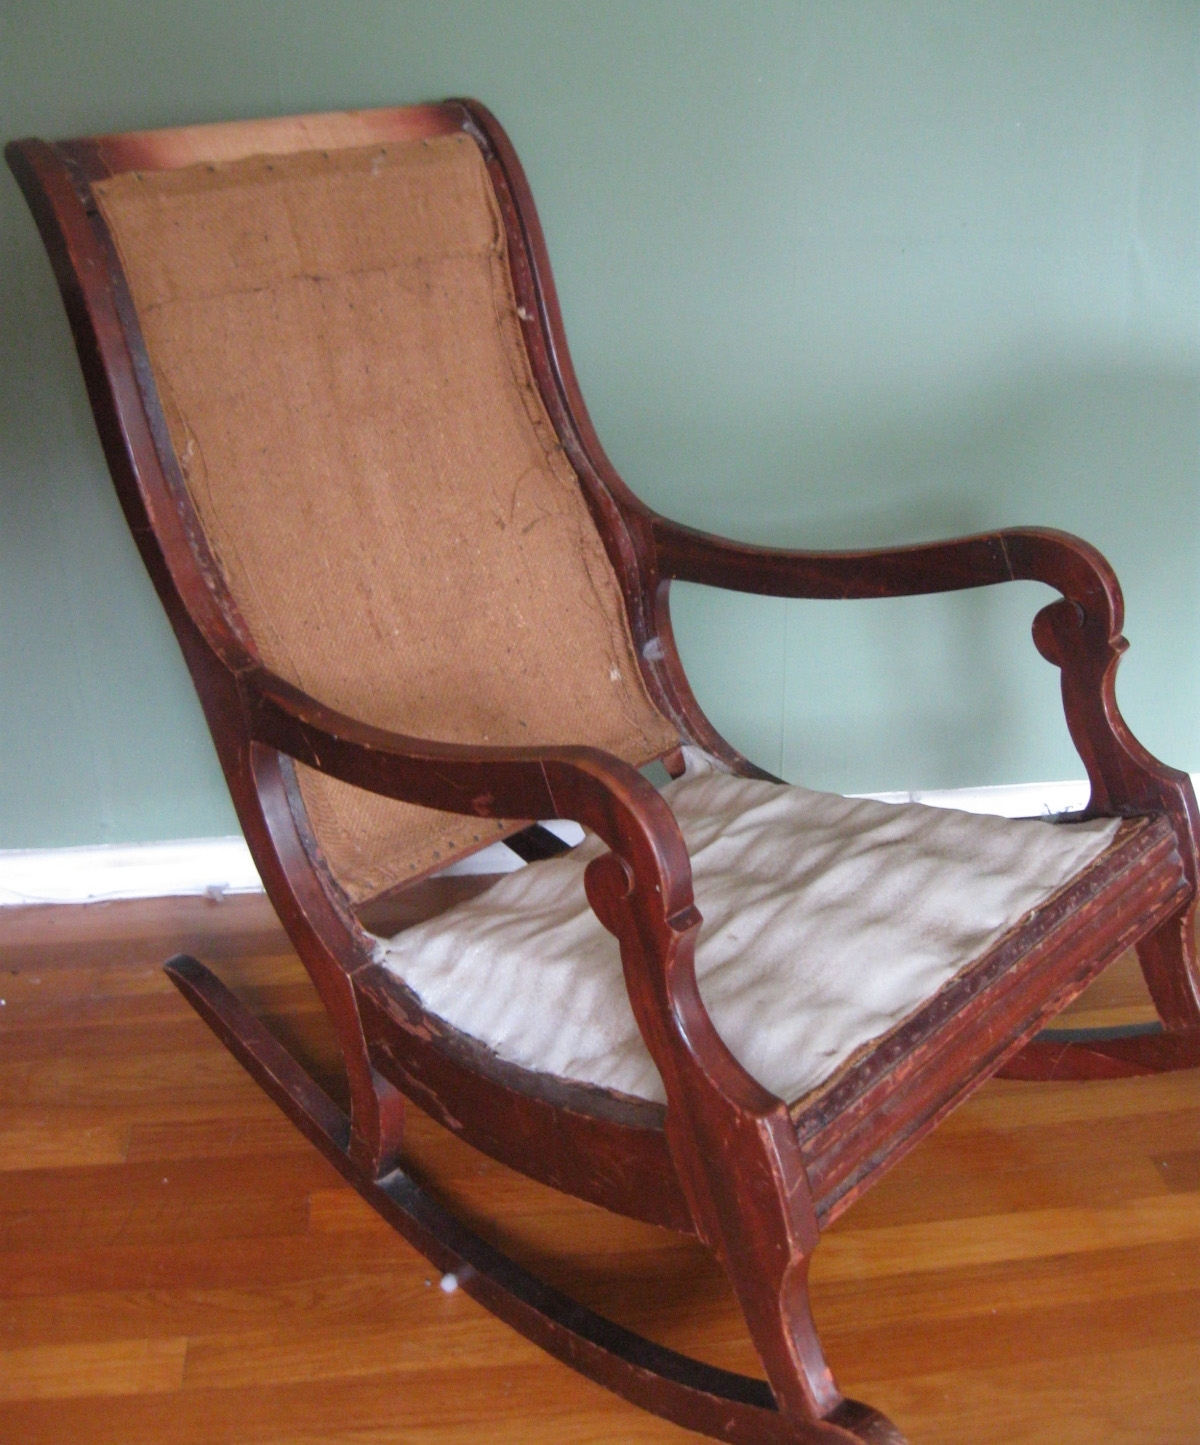 Widely Used Rocking Chairs With Lumbar Support Regarding Upholster Paint Rocking Chair Part Prodigal Pieces Chairs With (View 15 of 15)